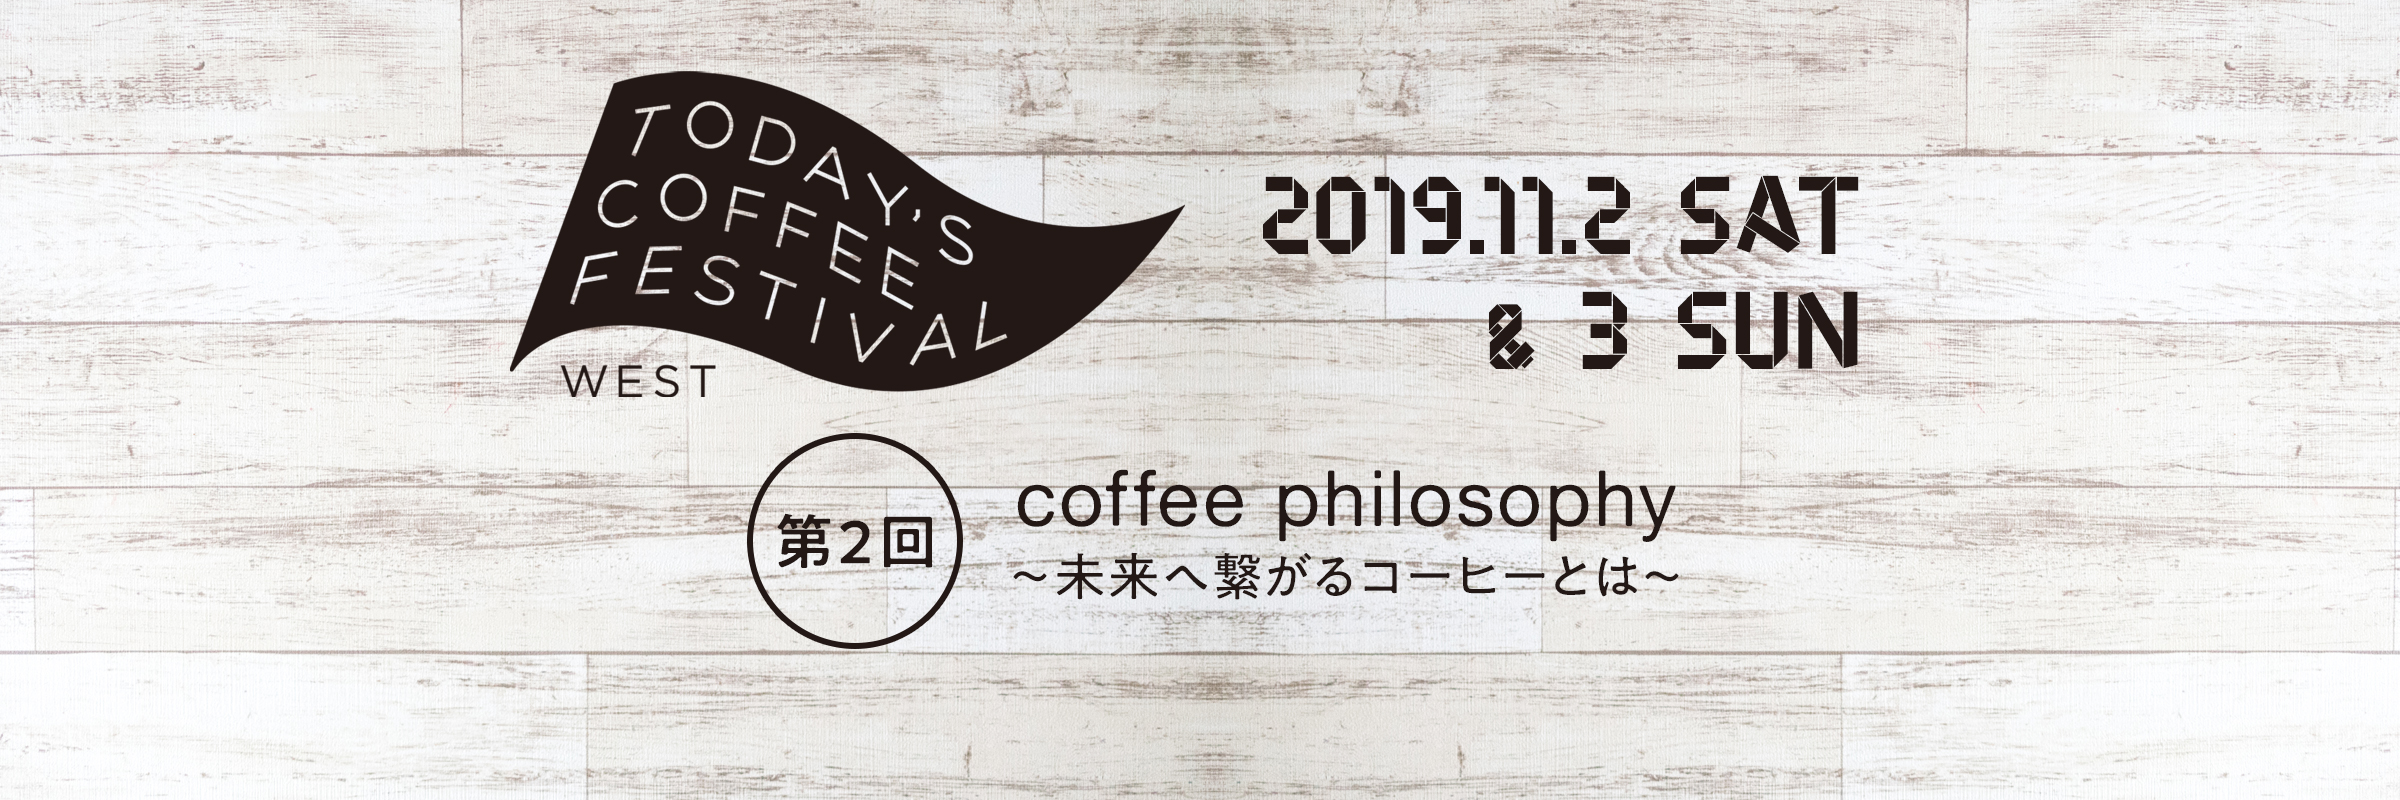 TODAY'S COFFEE FESTIVAL